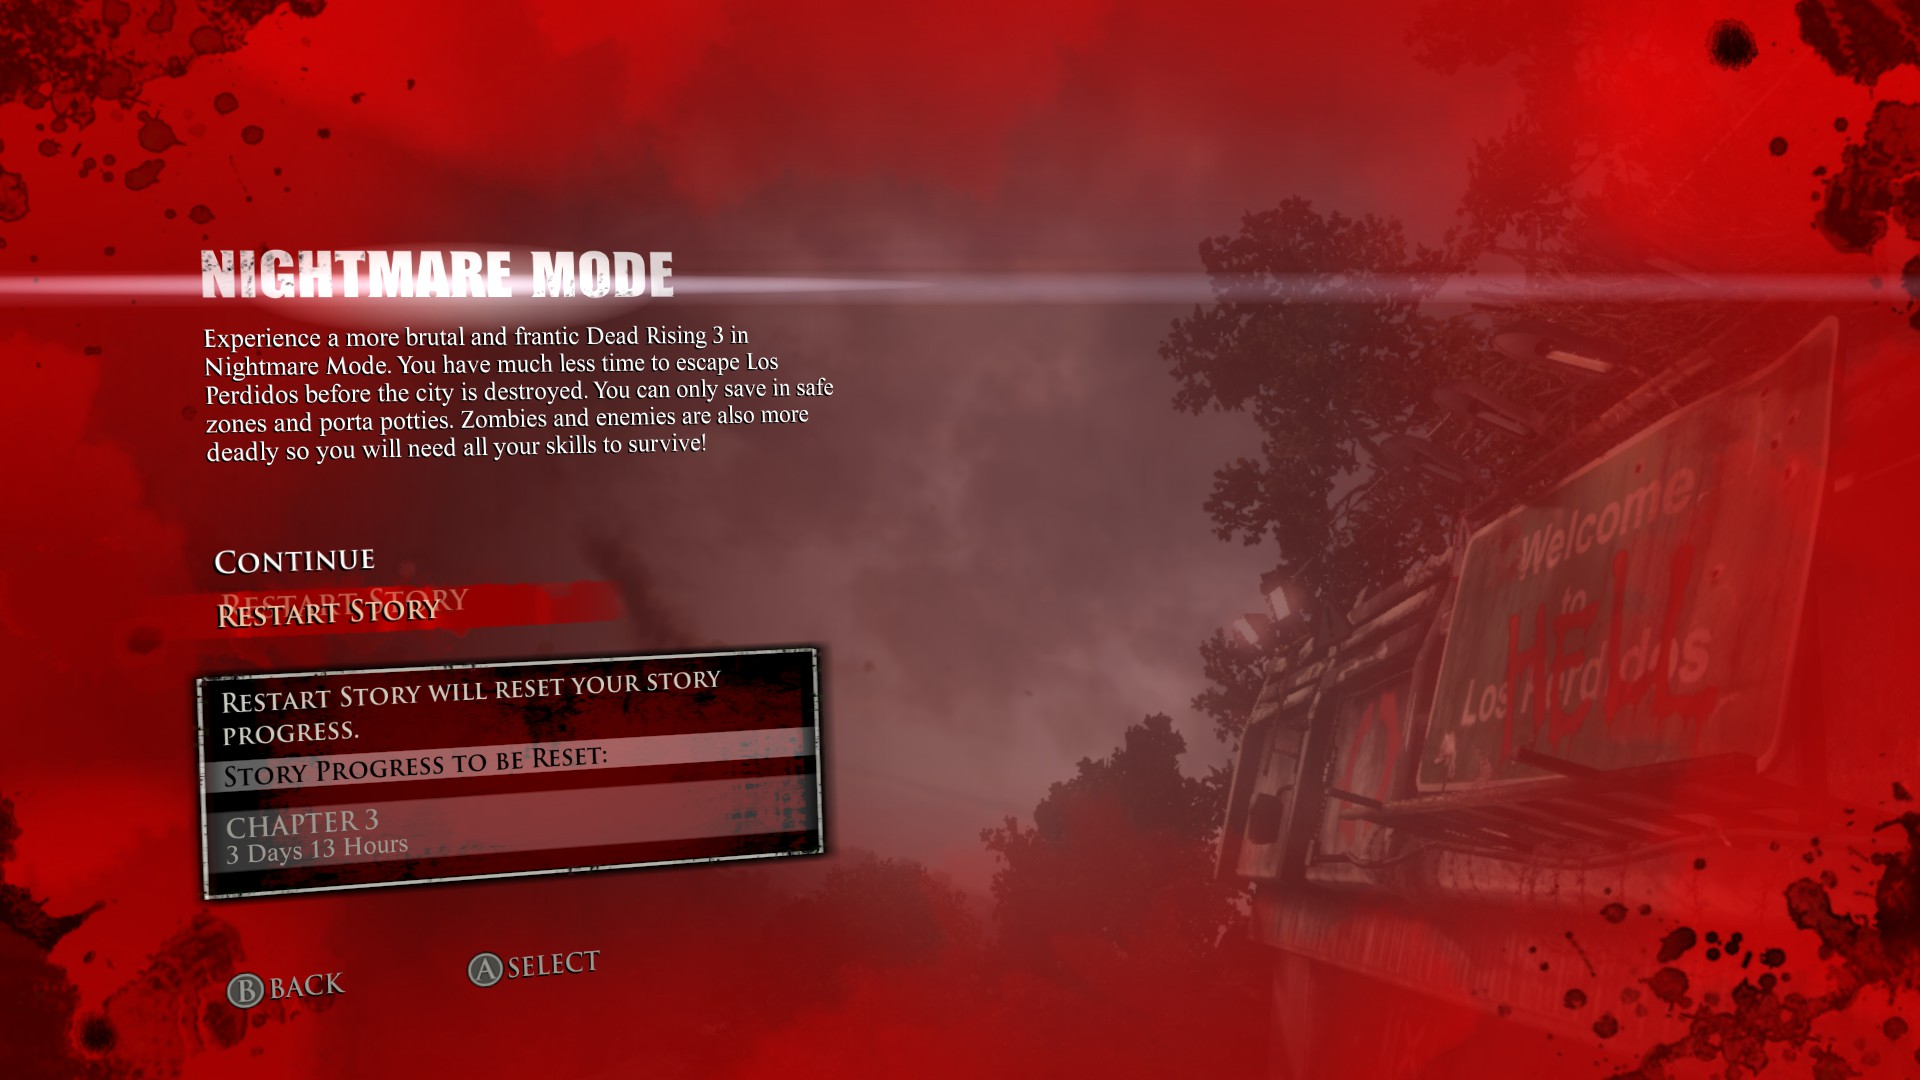 dead rising 3 game modes